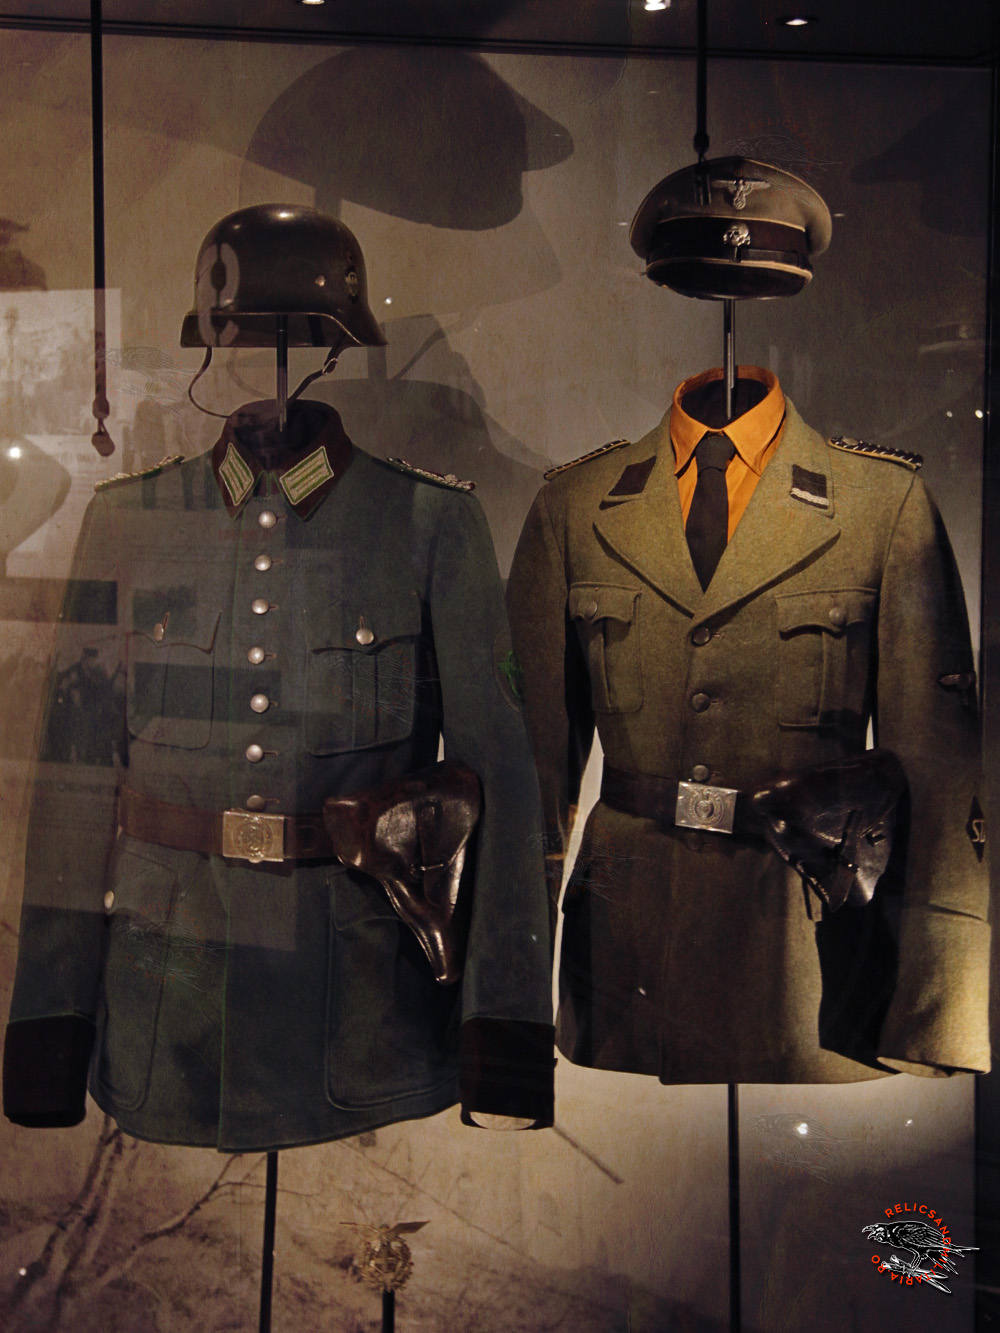 18 ww2 Nazi uniform